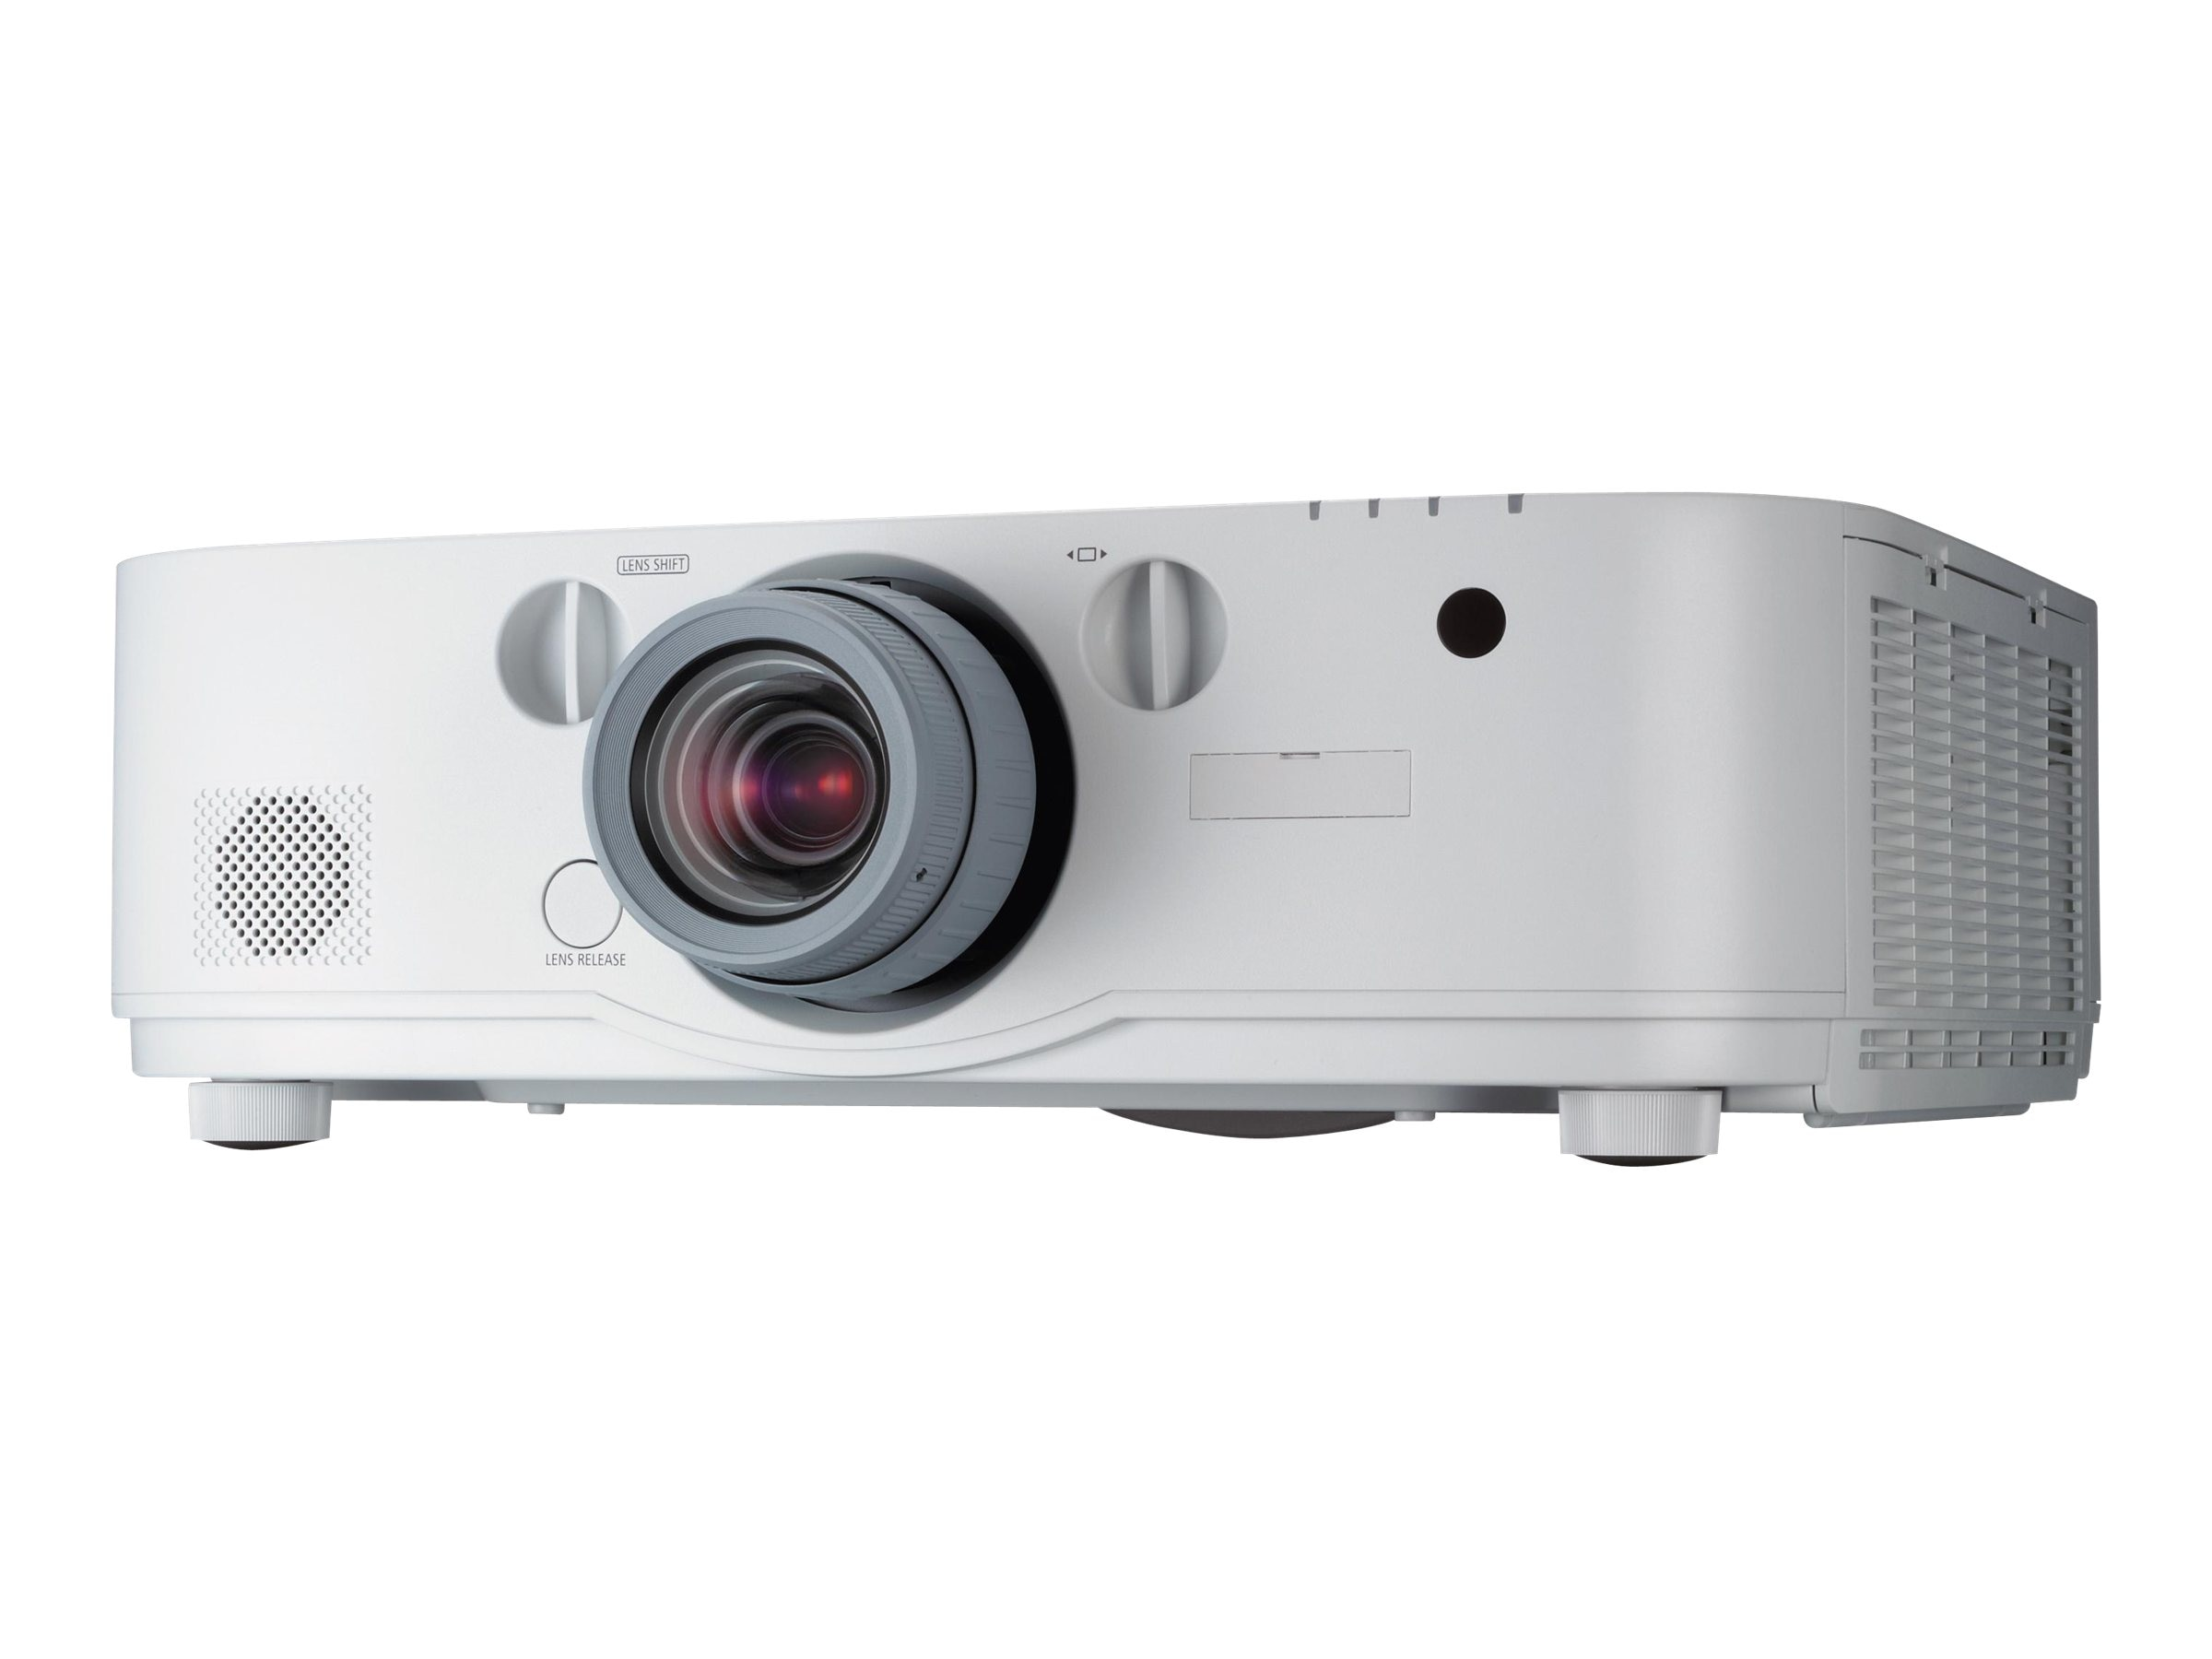 NEC NP-PA622U WUXGA LCD Projector, 6200 Lumens, White with Zoom Lens, NP-PA622U-13ZL, 17091893, Projectors